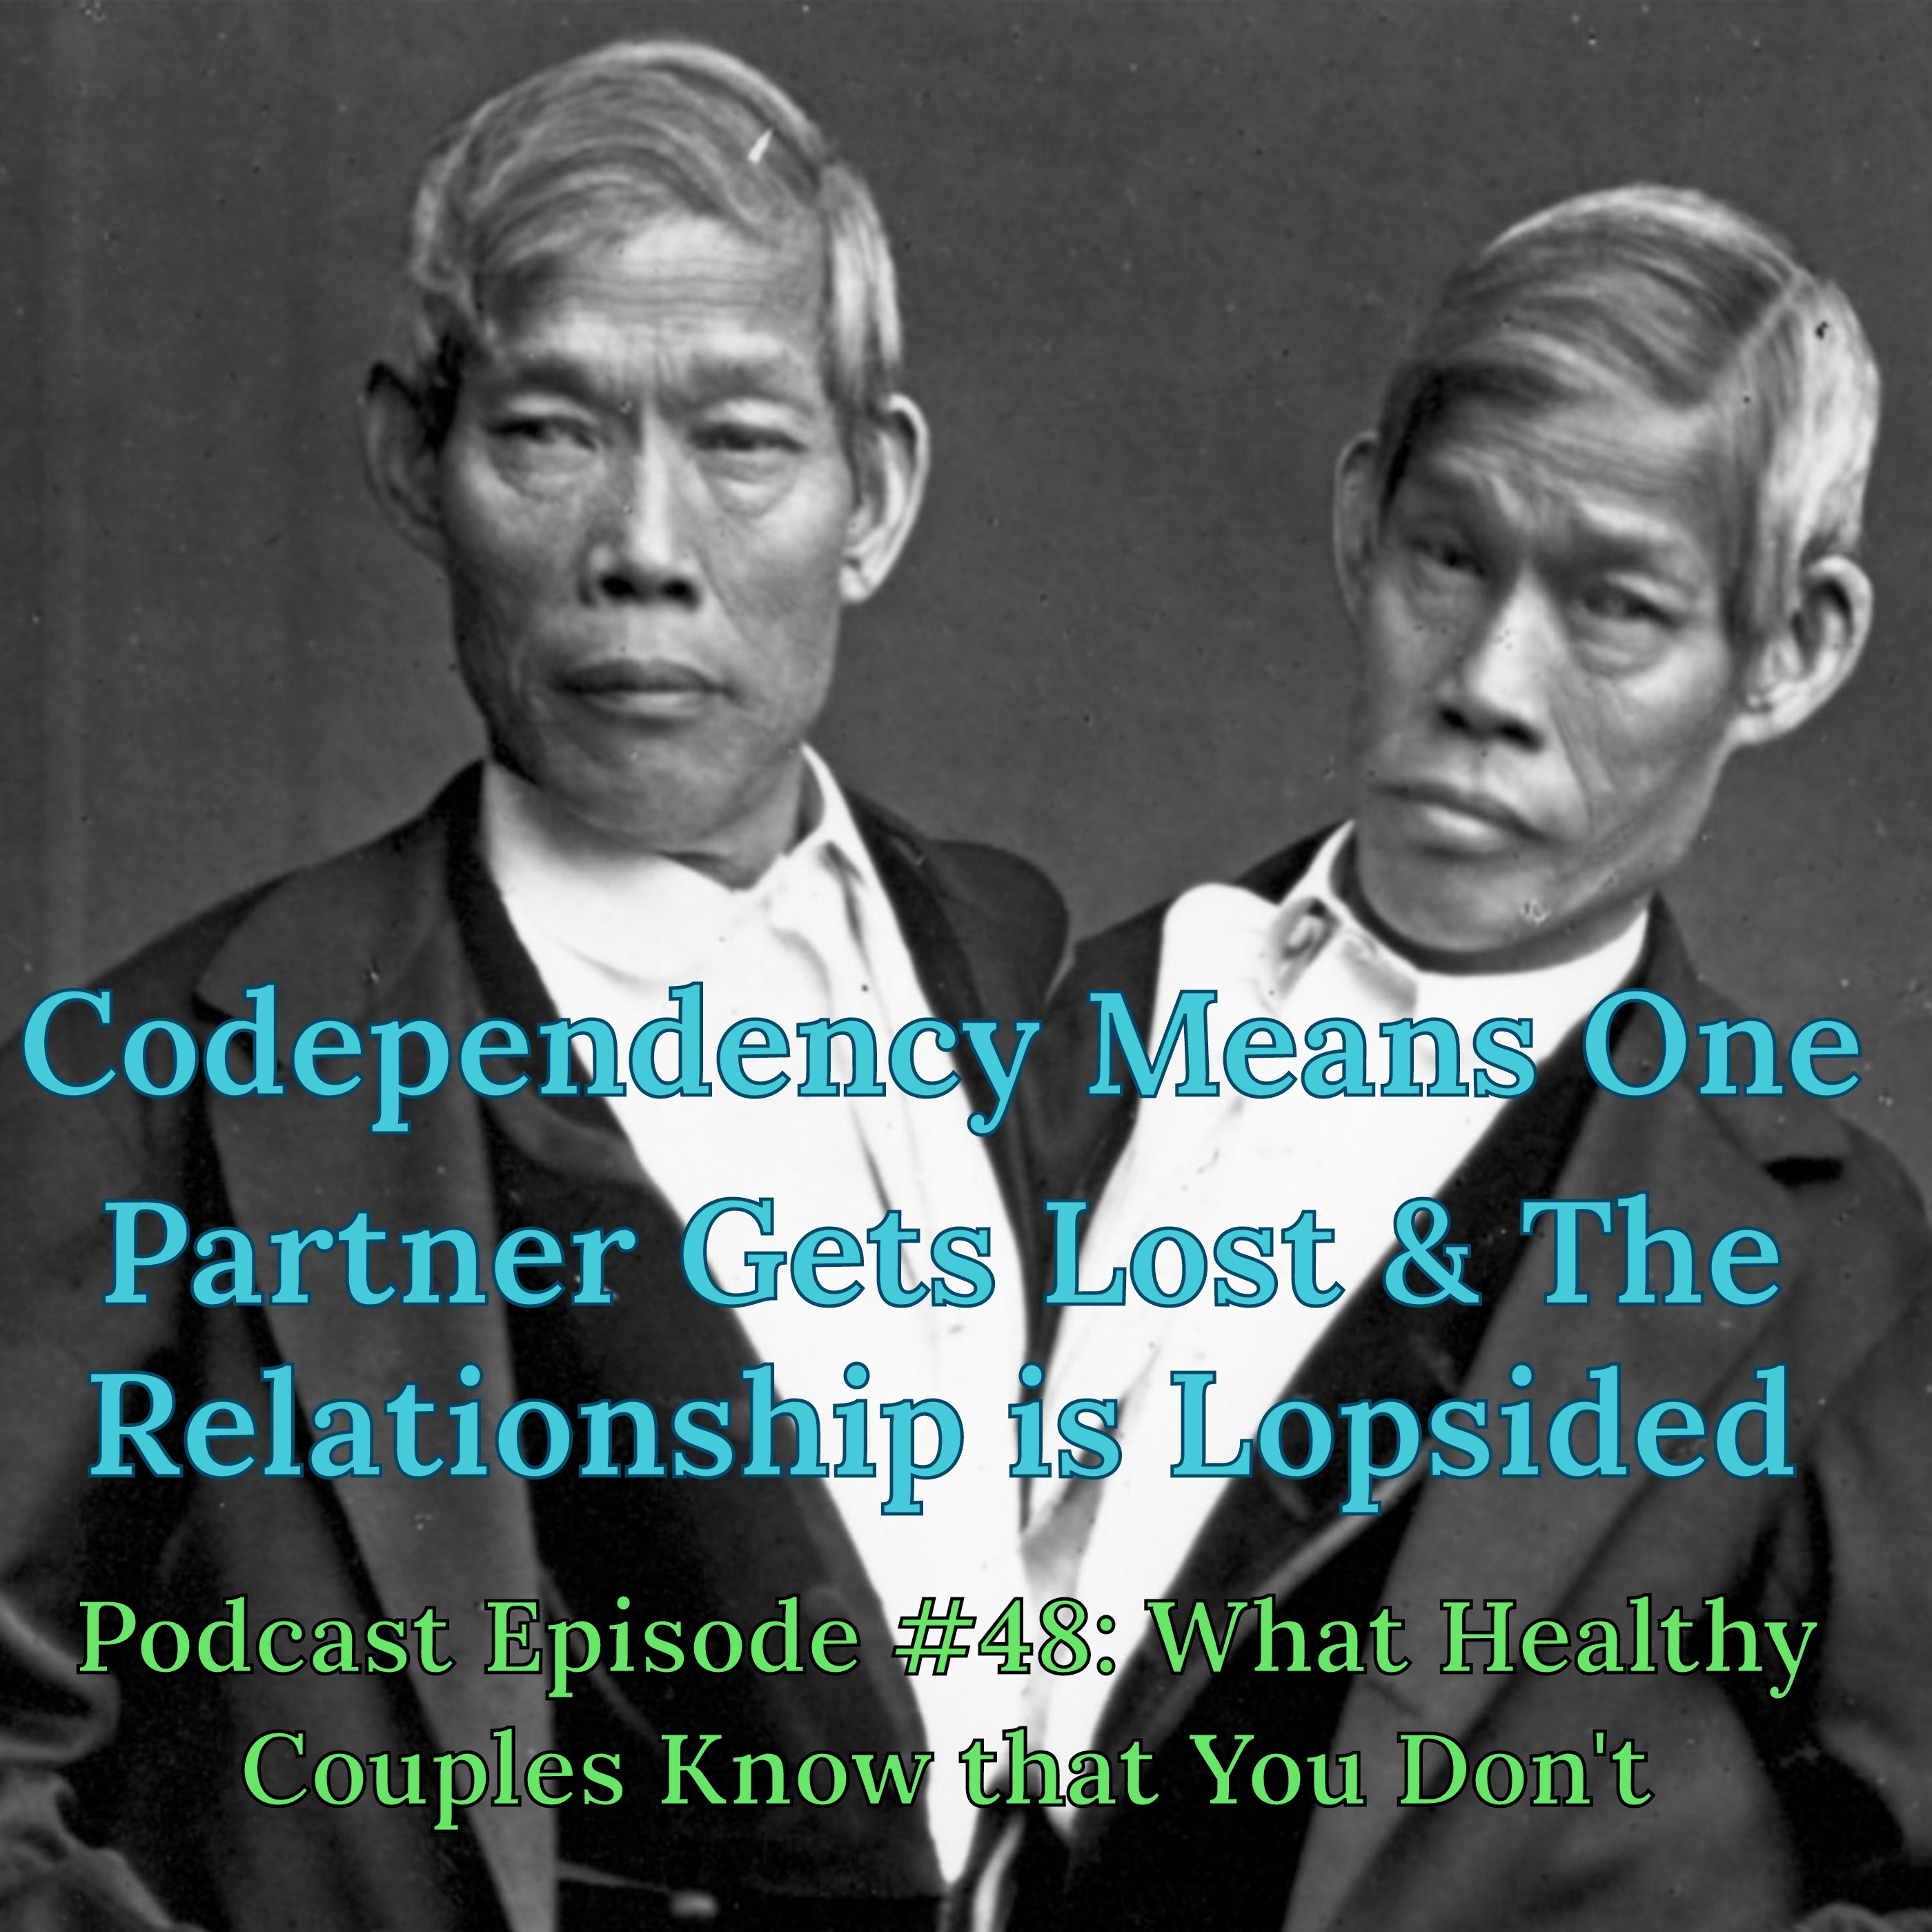 What Healthy Couples Know That You Don't - Codependency Means Someone Gets Lost & The Relationship is Lopsided